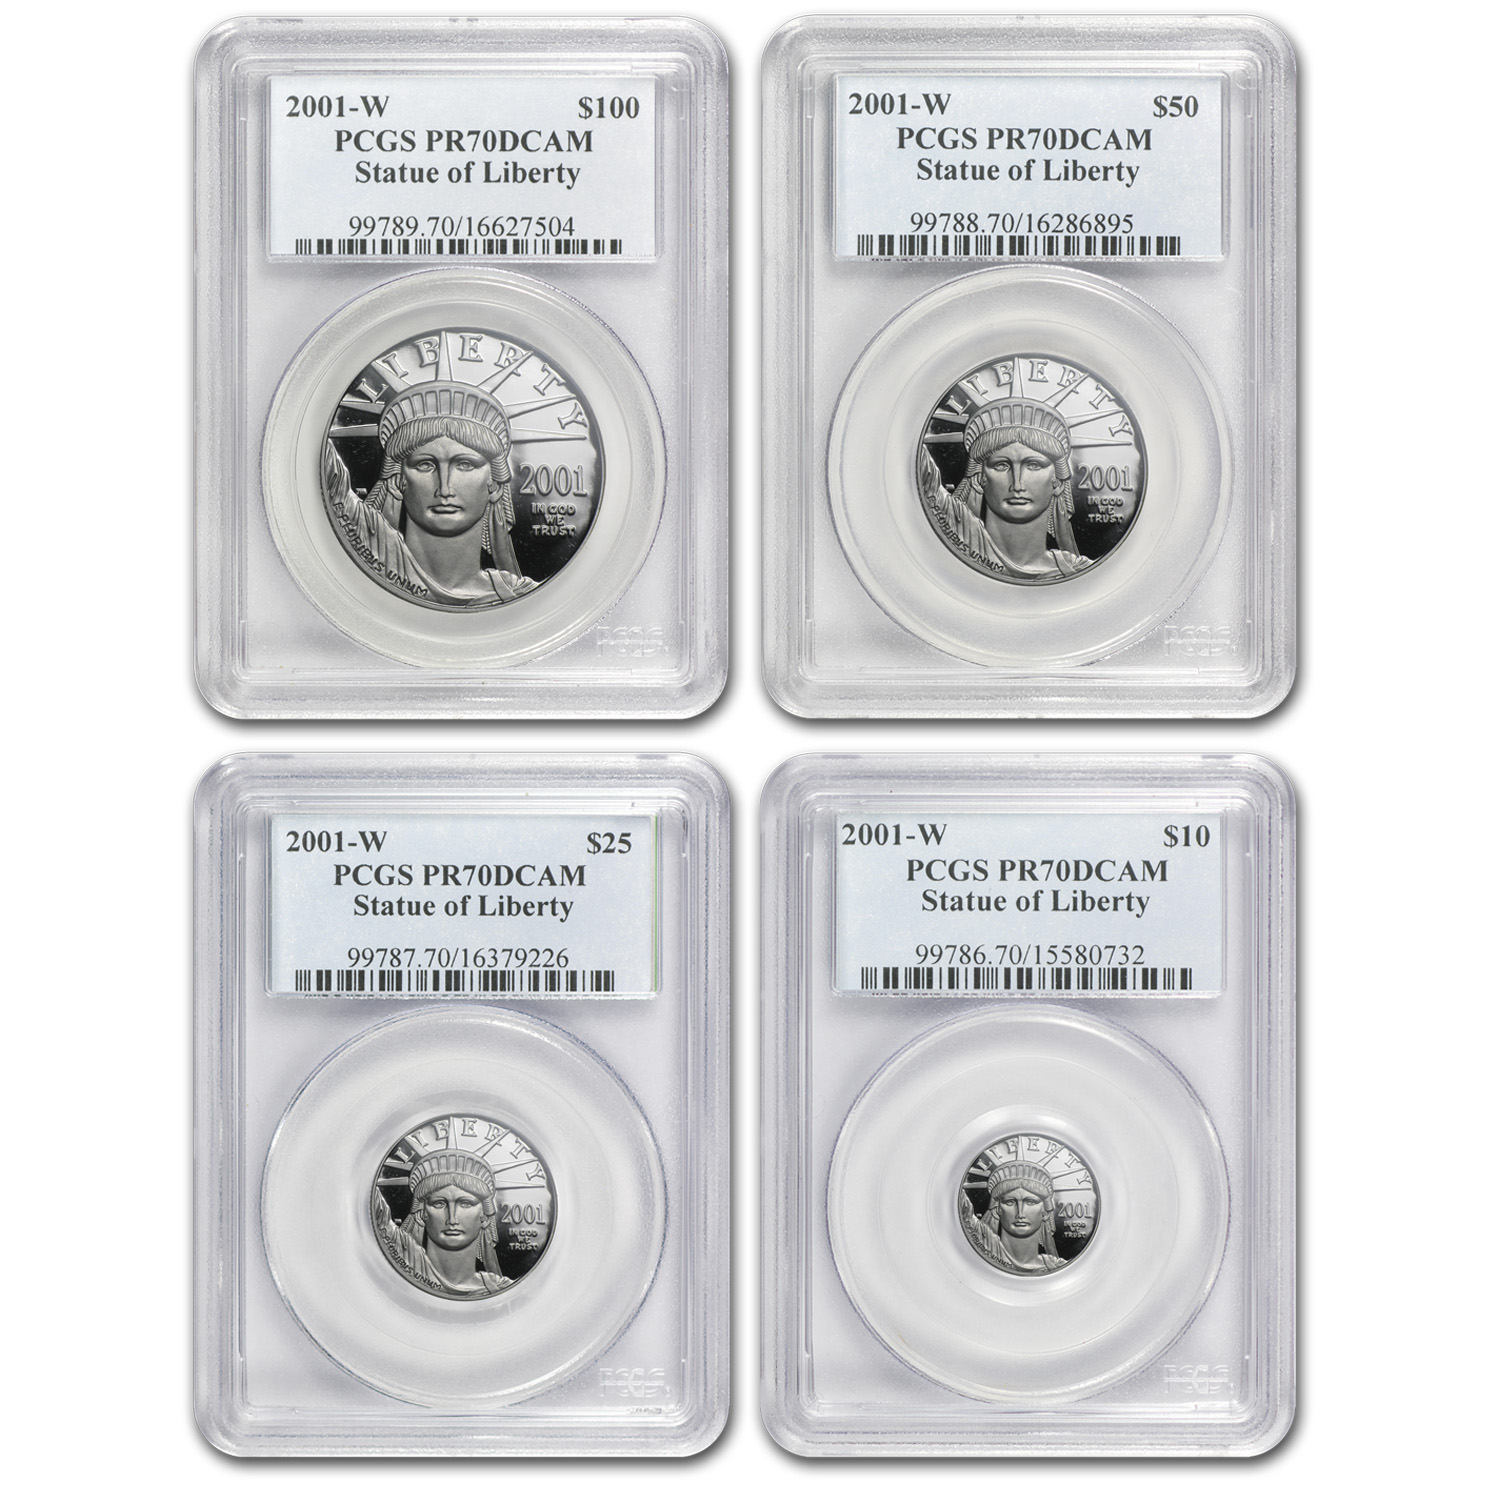 2001-W 4-Coin Proof Platinum American Eagle Set PR-70 PCGS